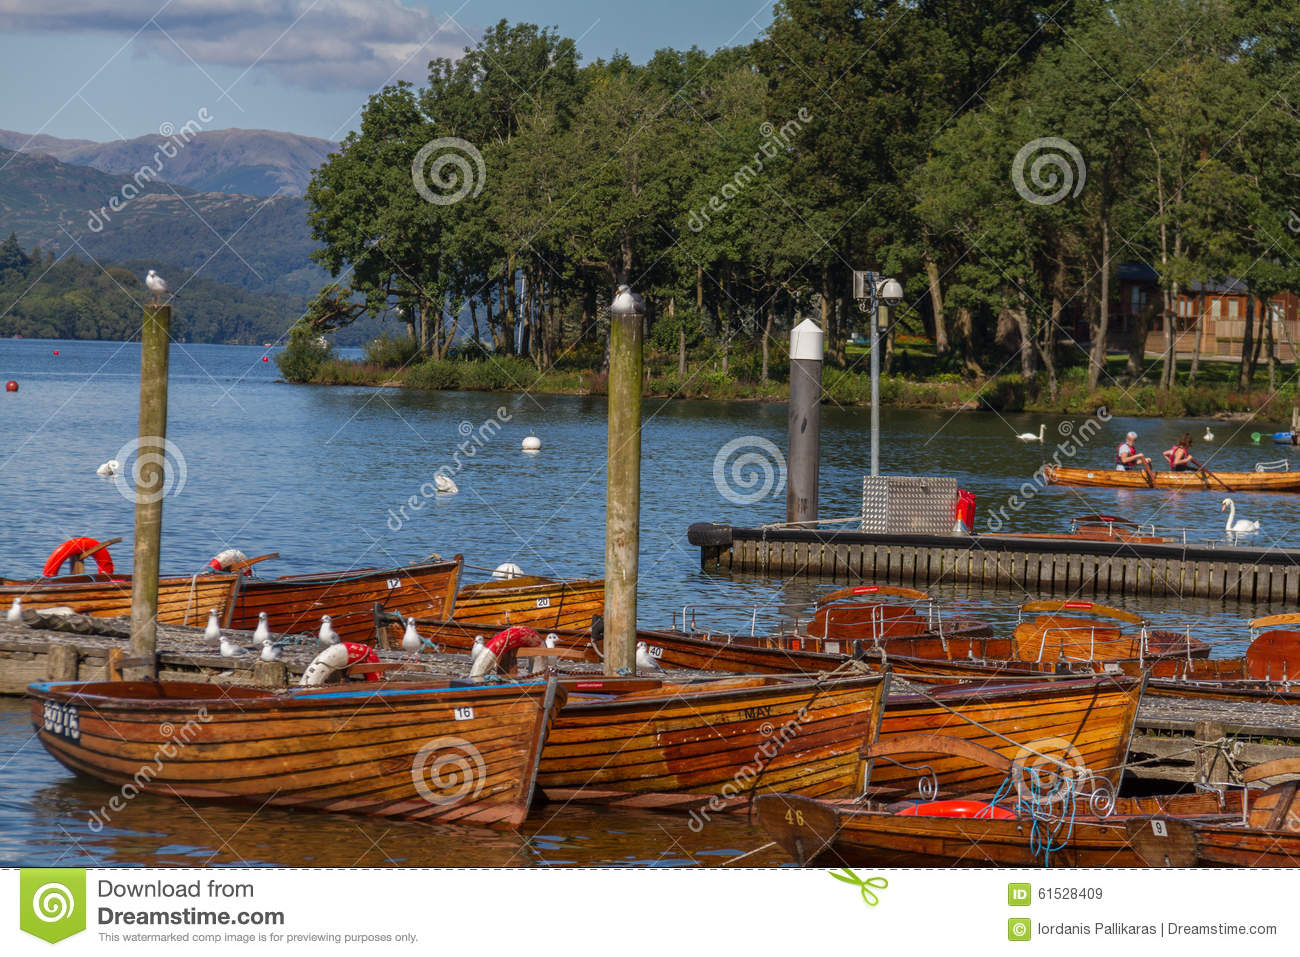 Bowness-On-Windermere United Kingdom  city images : Bowness on Windermere, United Kingdom September 7, 2015: Photo of ...